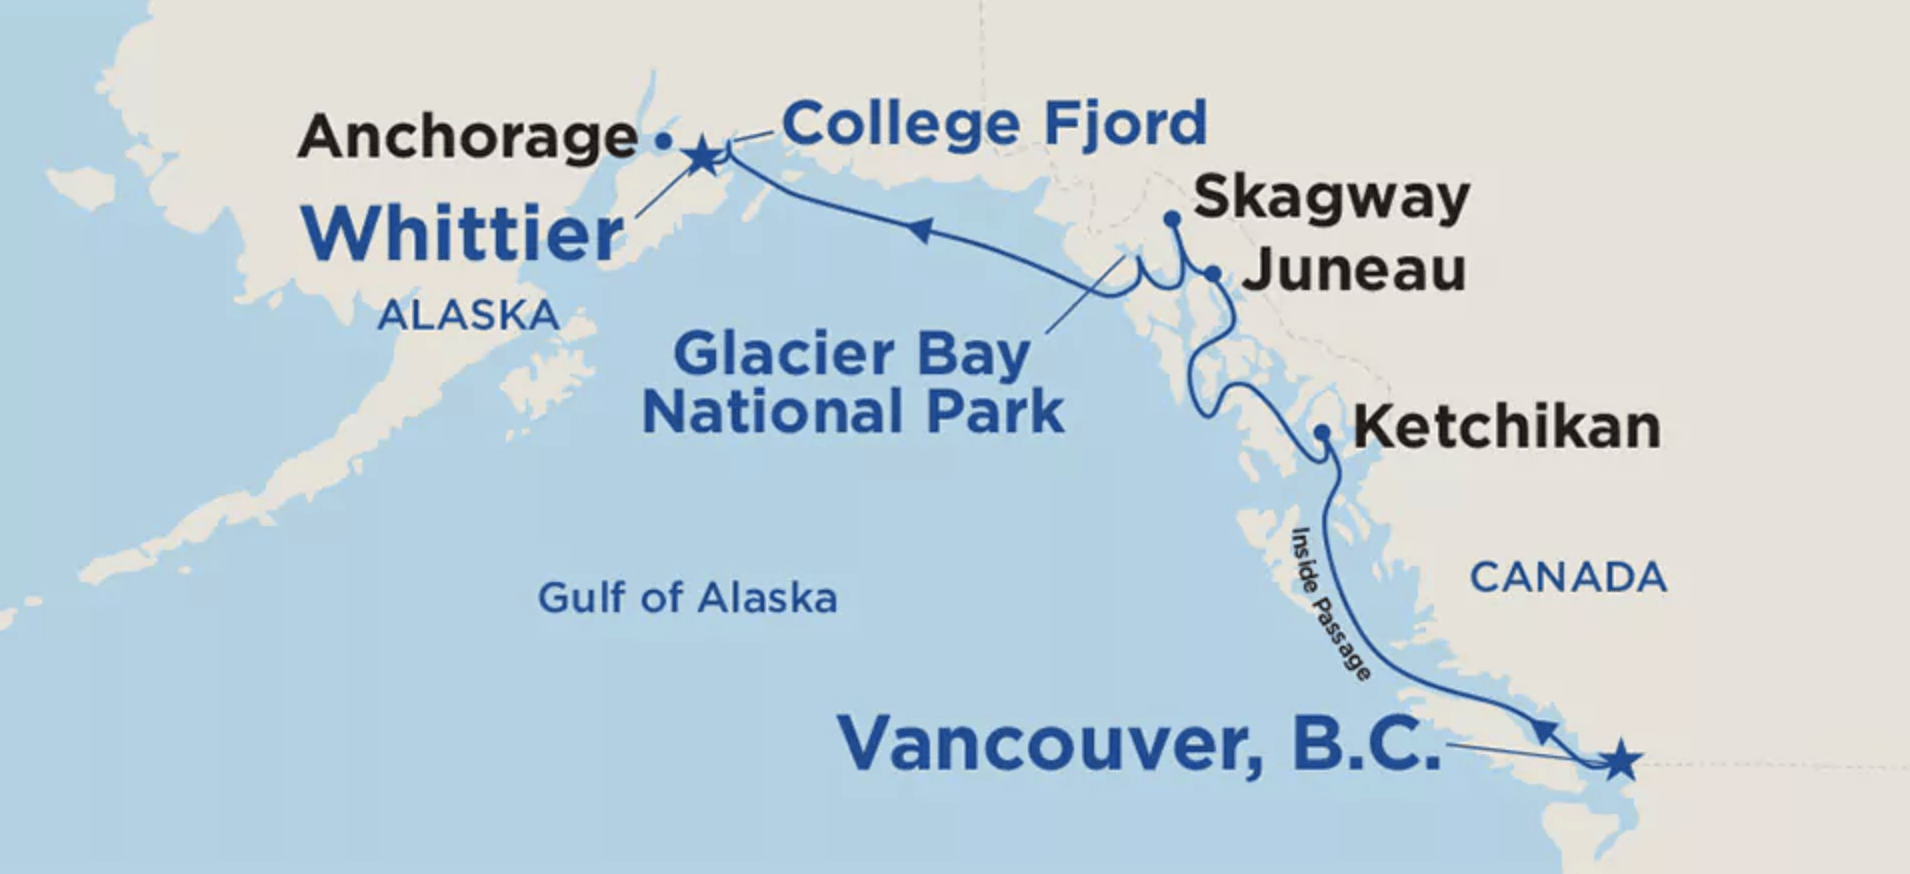 This is an example of a Princess cruise that visits the Inside Passage as well as the Gulf of Alaska, terminating or originating in Anchorage Whittier), Alaska. Photo courtesy of Princess Cruises )